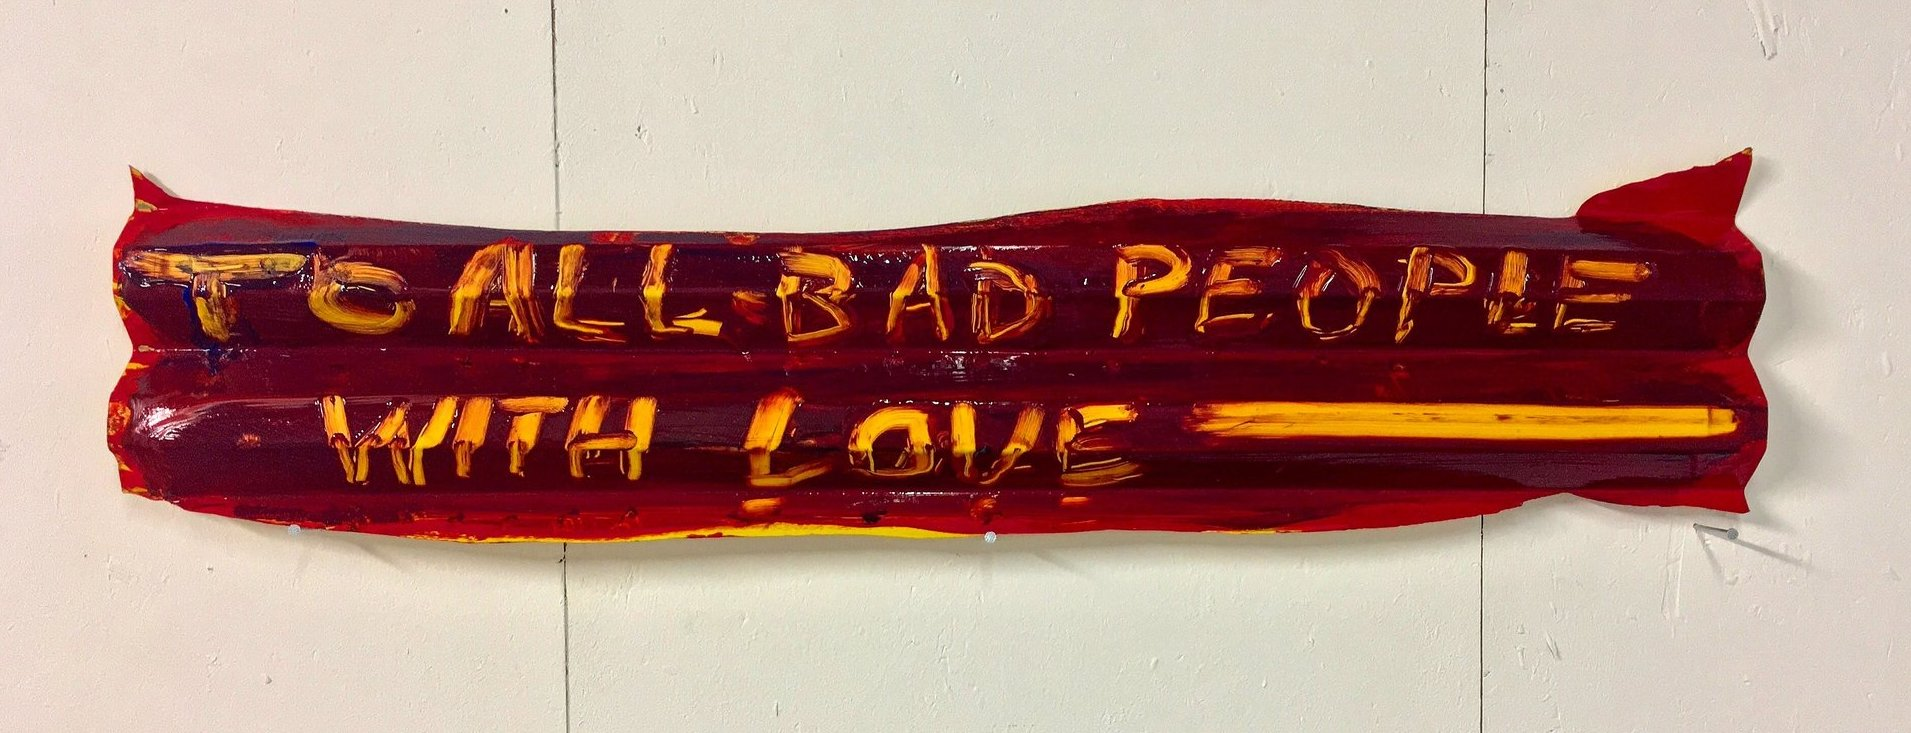 Adriano Costa, FreeBeer (To All Bad People With Love), 2017, acrylic on found object